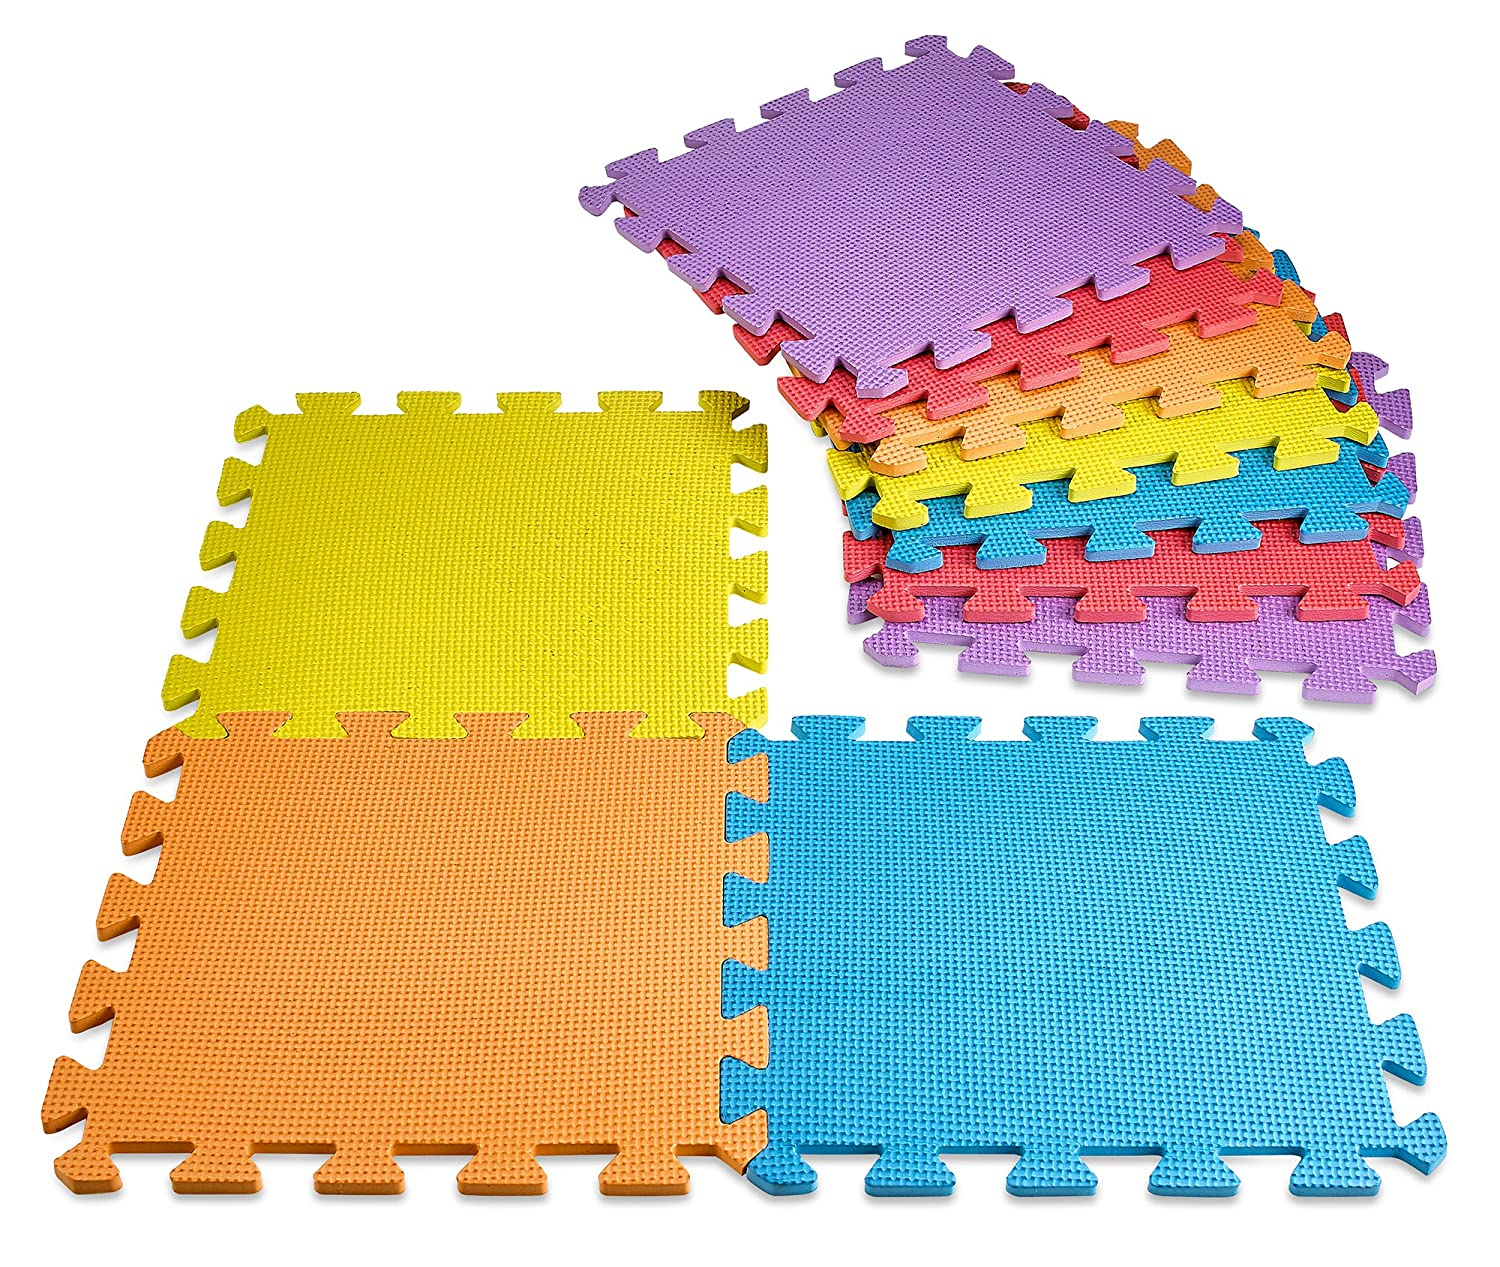 MEDca floor Mat 9-tile Exercise Mat Solid Foam EVA Playmat Kids Safety Assorted Soft Colors